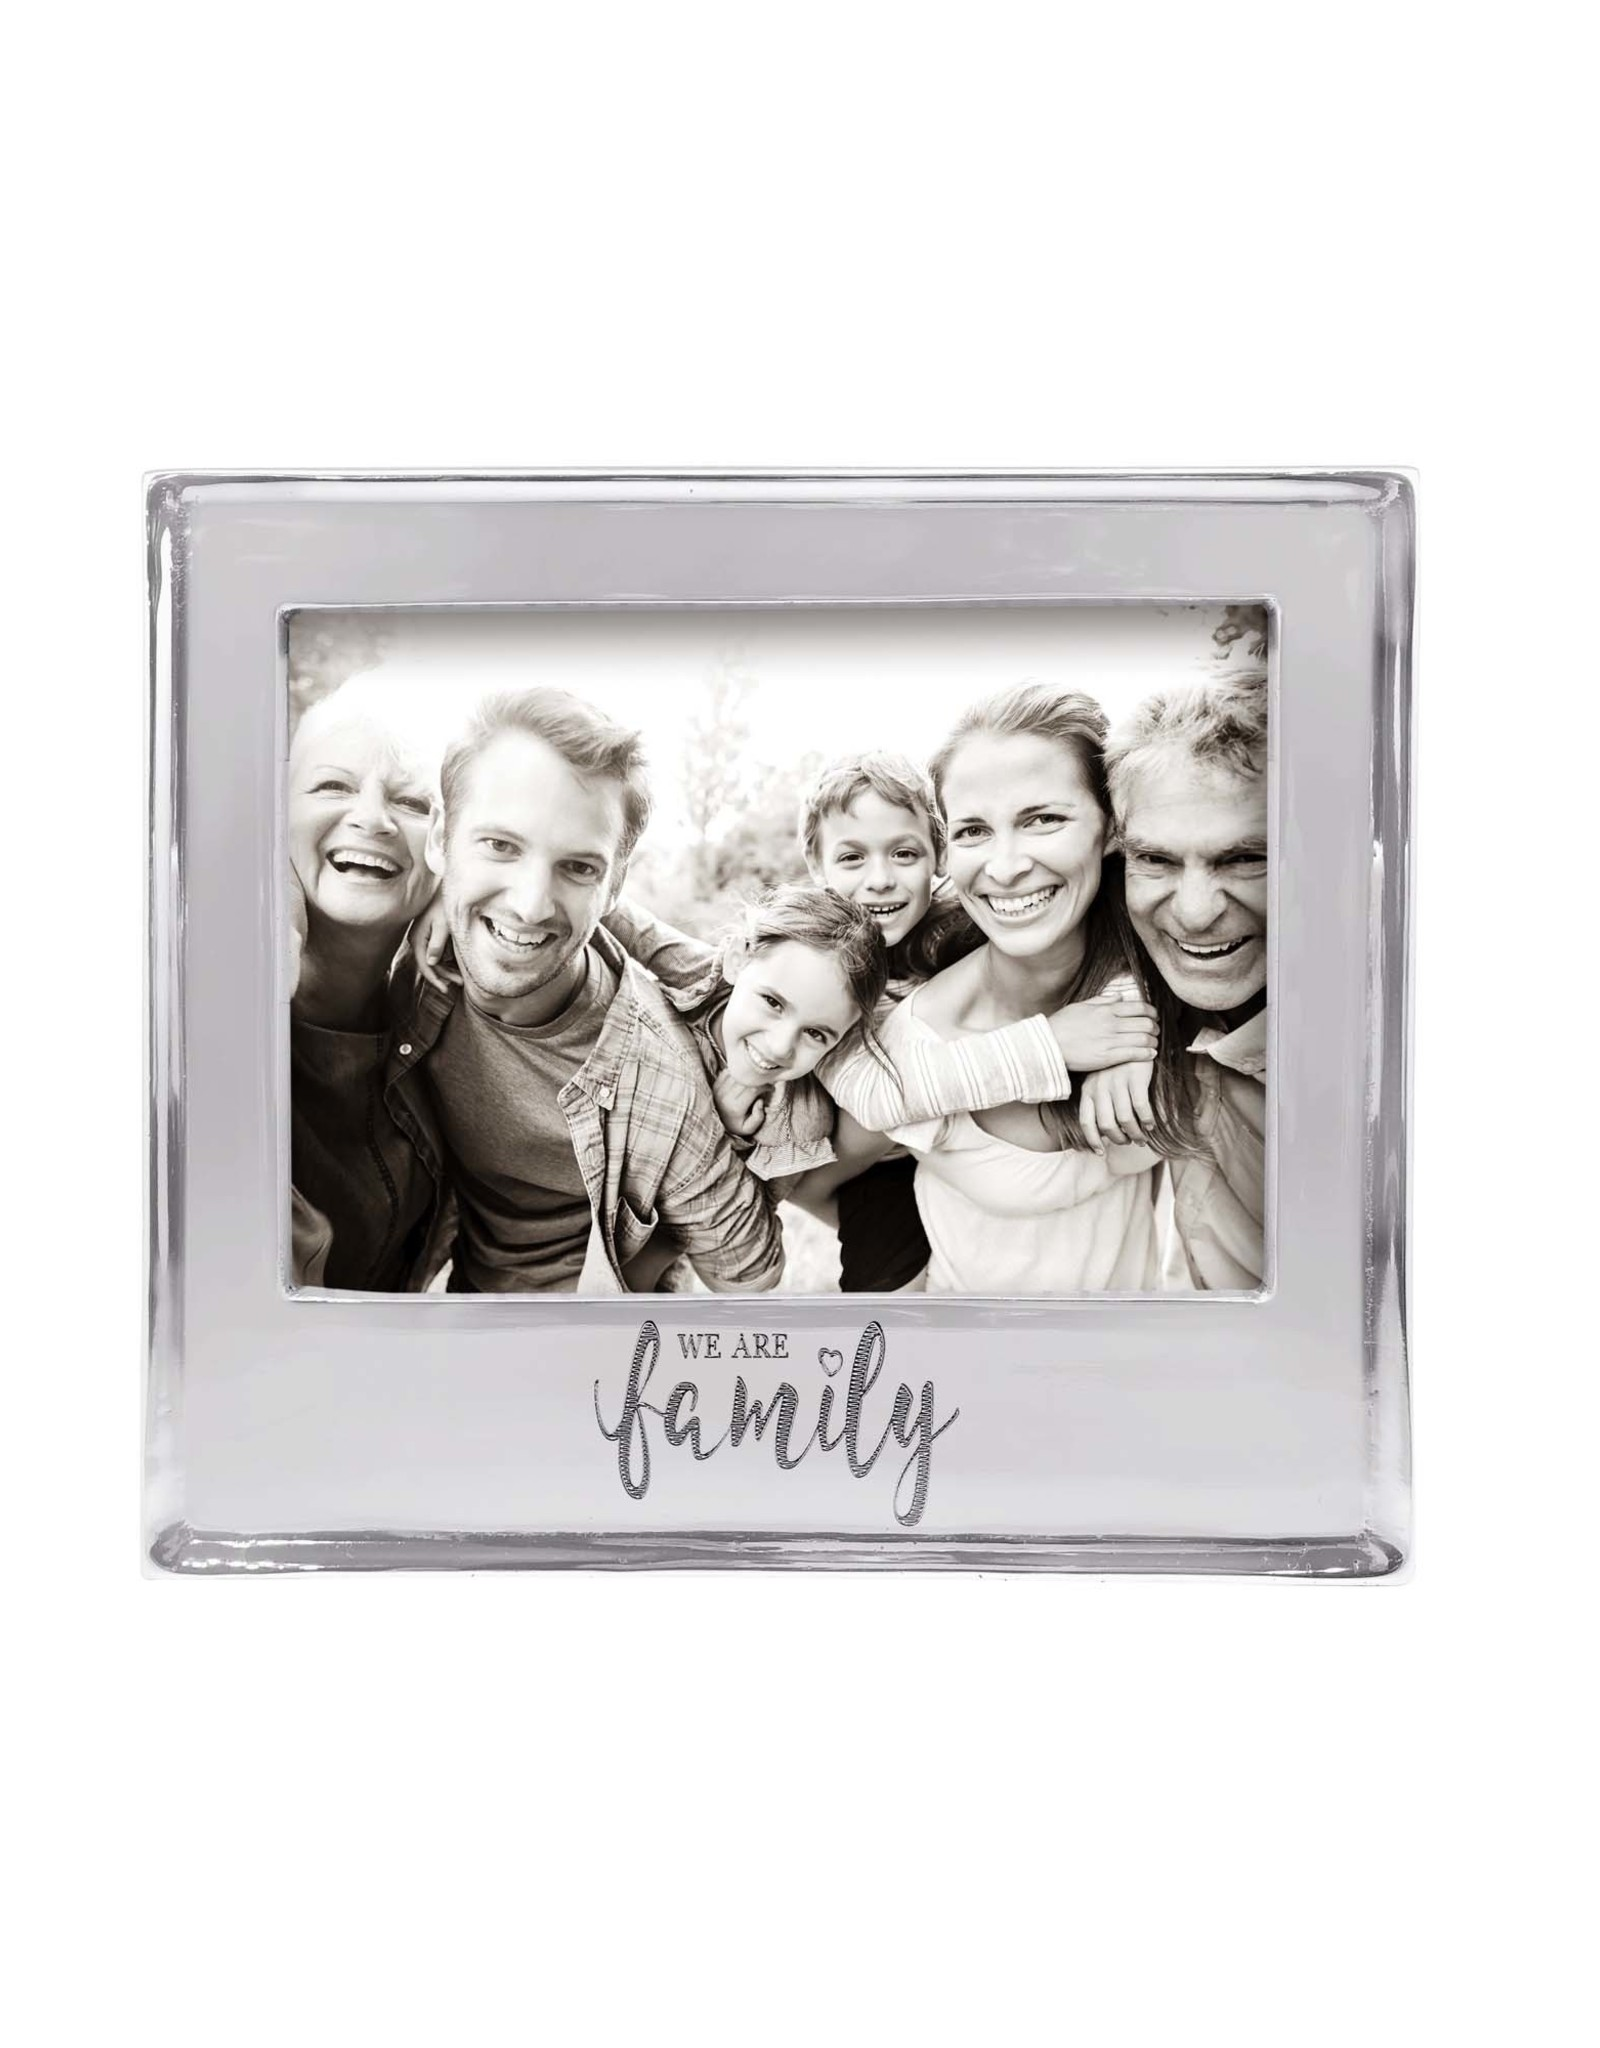 Mariposa We Are Family 5x7 Statement Frame